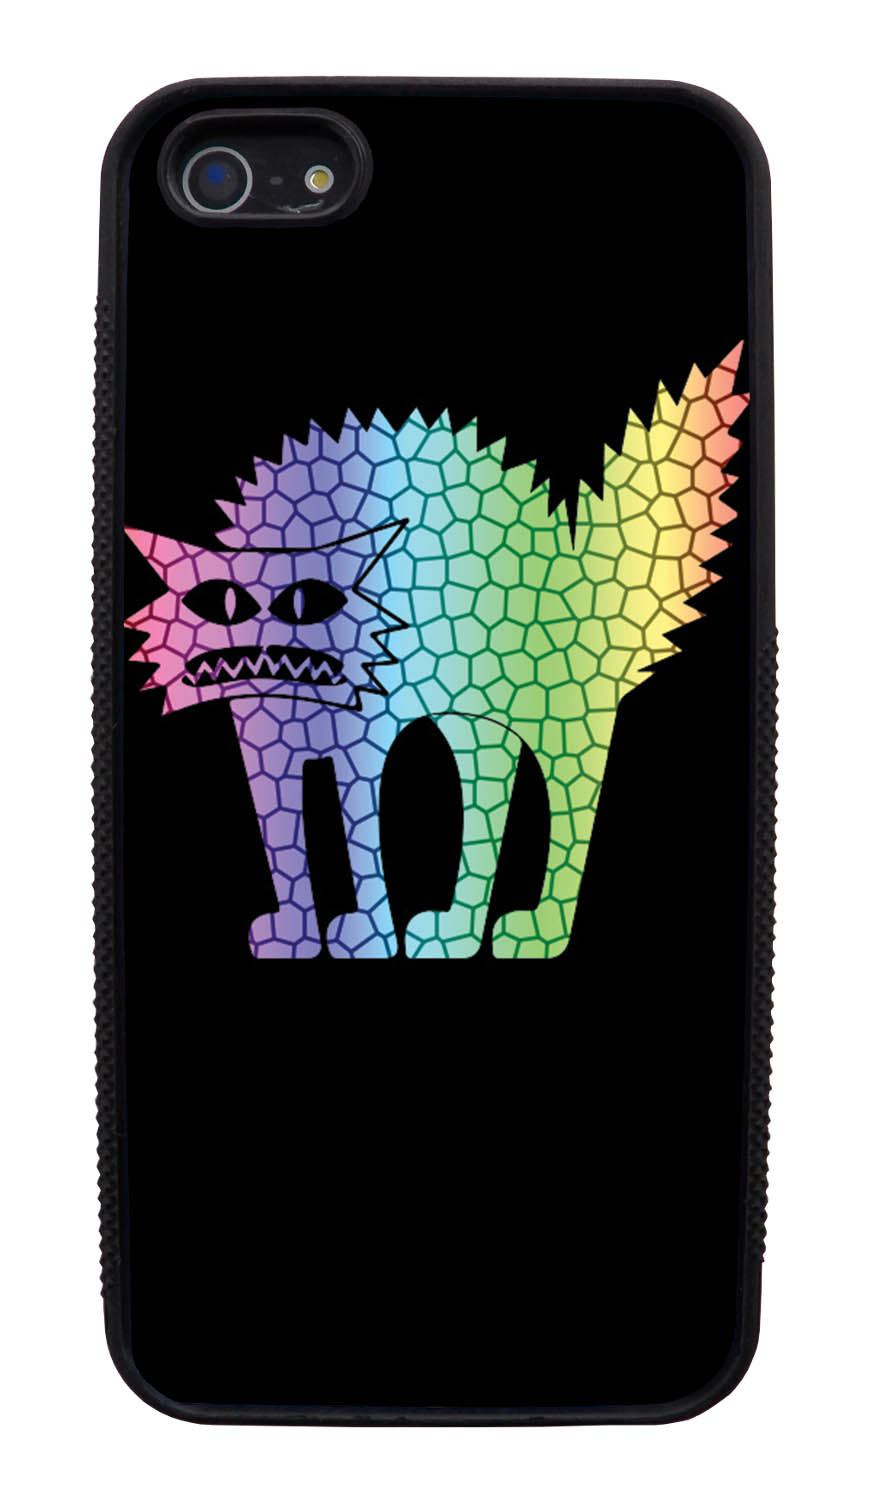 Apple iPhone 5 / 5S Cat Case - Rainbow Colored Frenzied Cat on Black - Simple Stencils Cutout - Black Slim Rubber Case